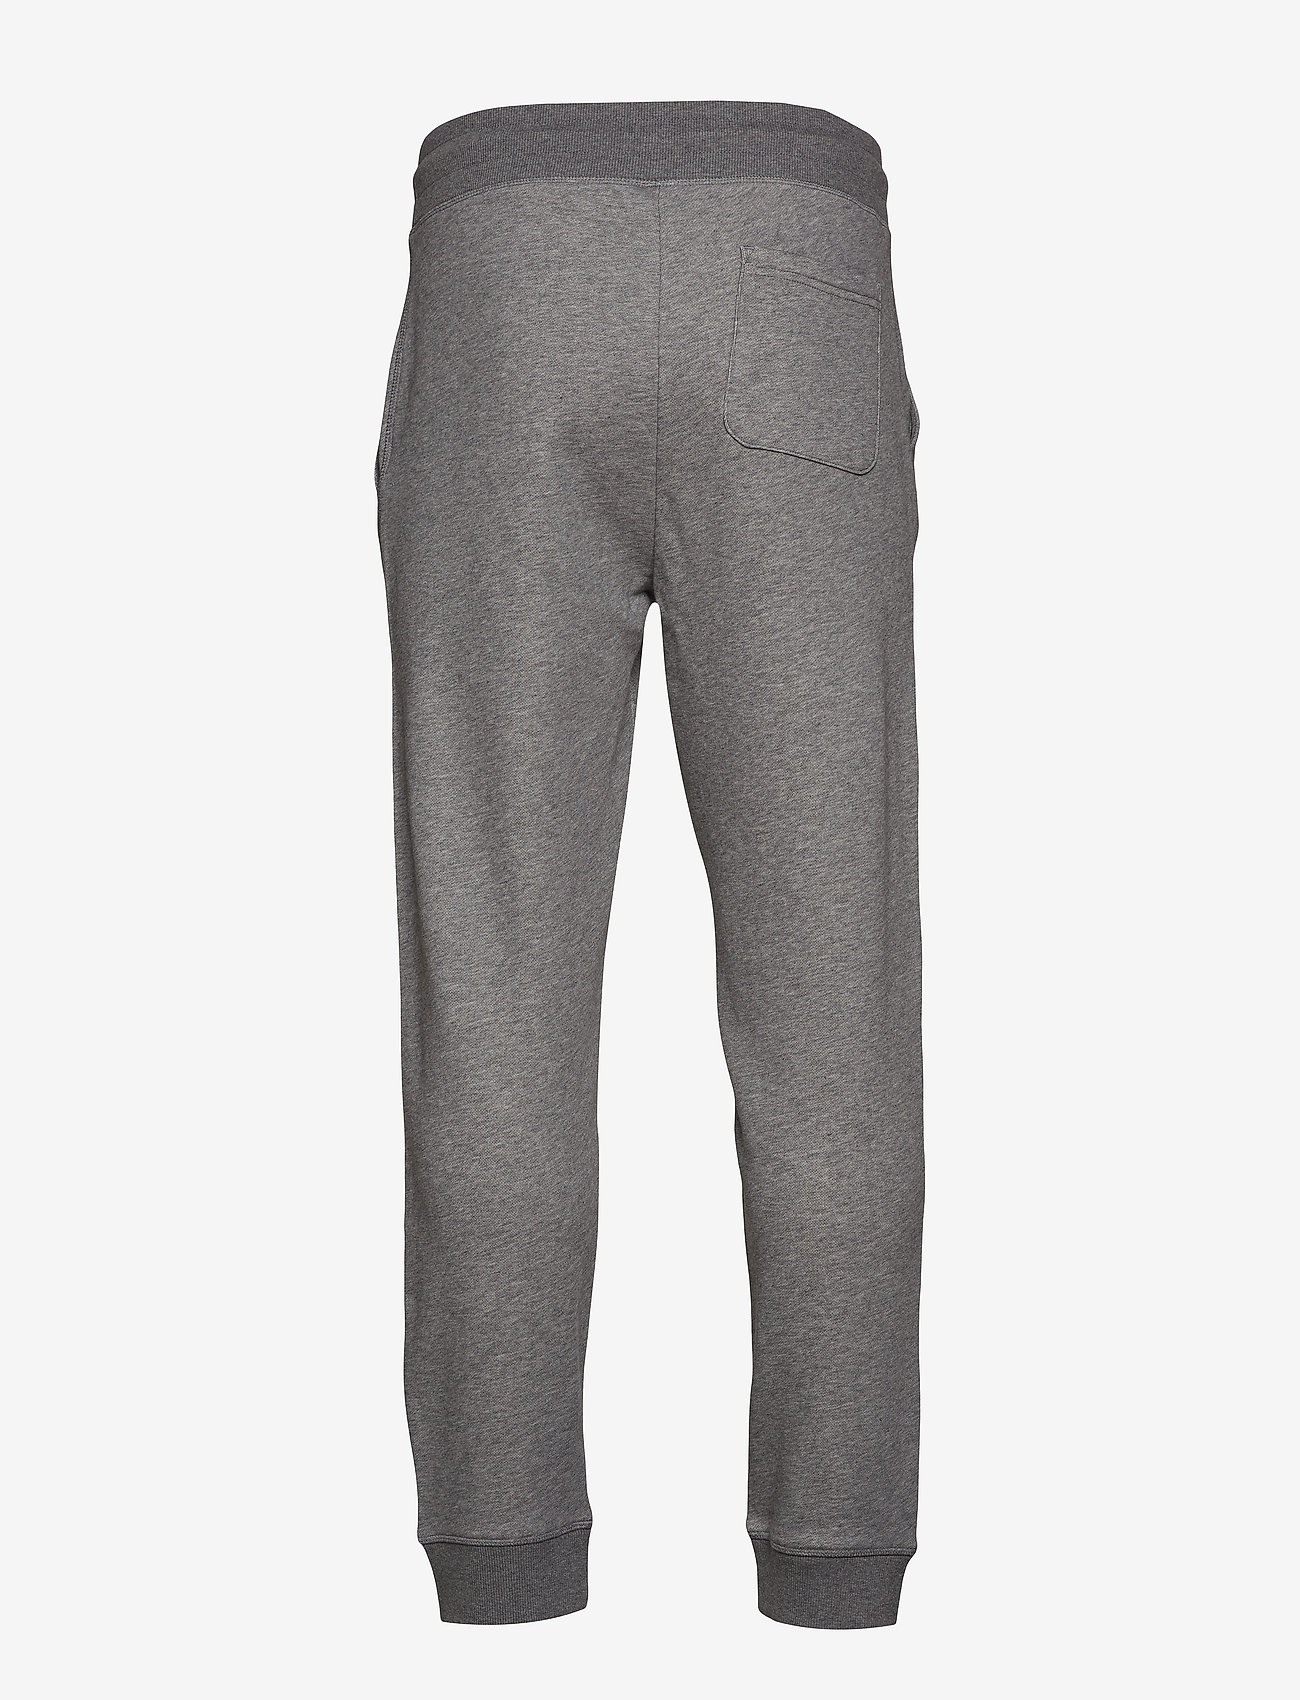 GANT THE ORIGINAL SWEAT PANTS - Joggebukser DARK GREY MELANGE - Menn Klær